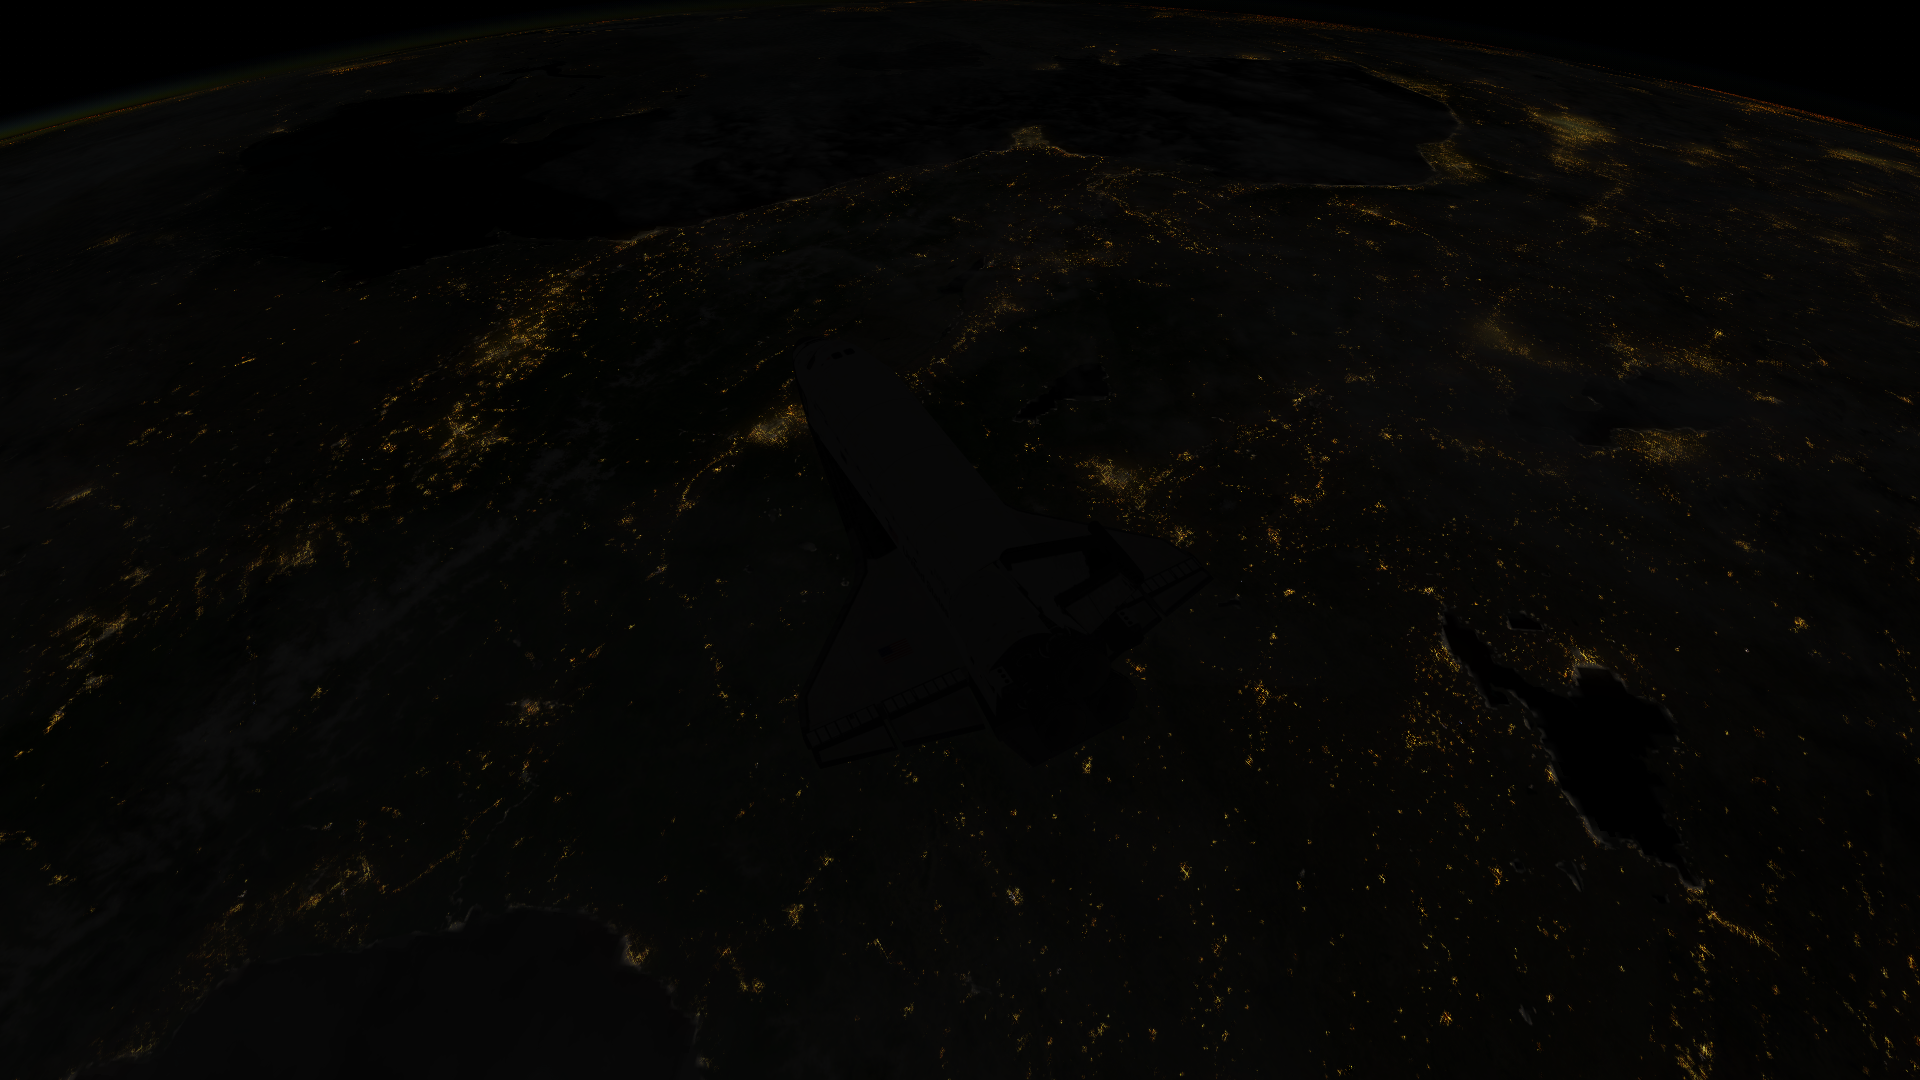 Kerbal_Space_Program_12.01.2021_23_53_47